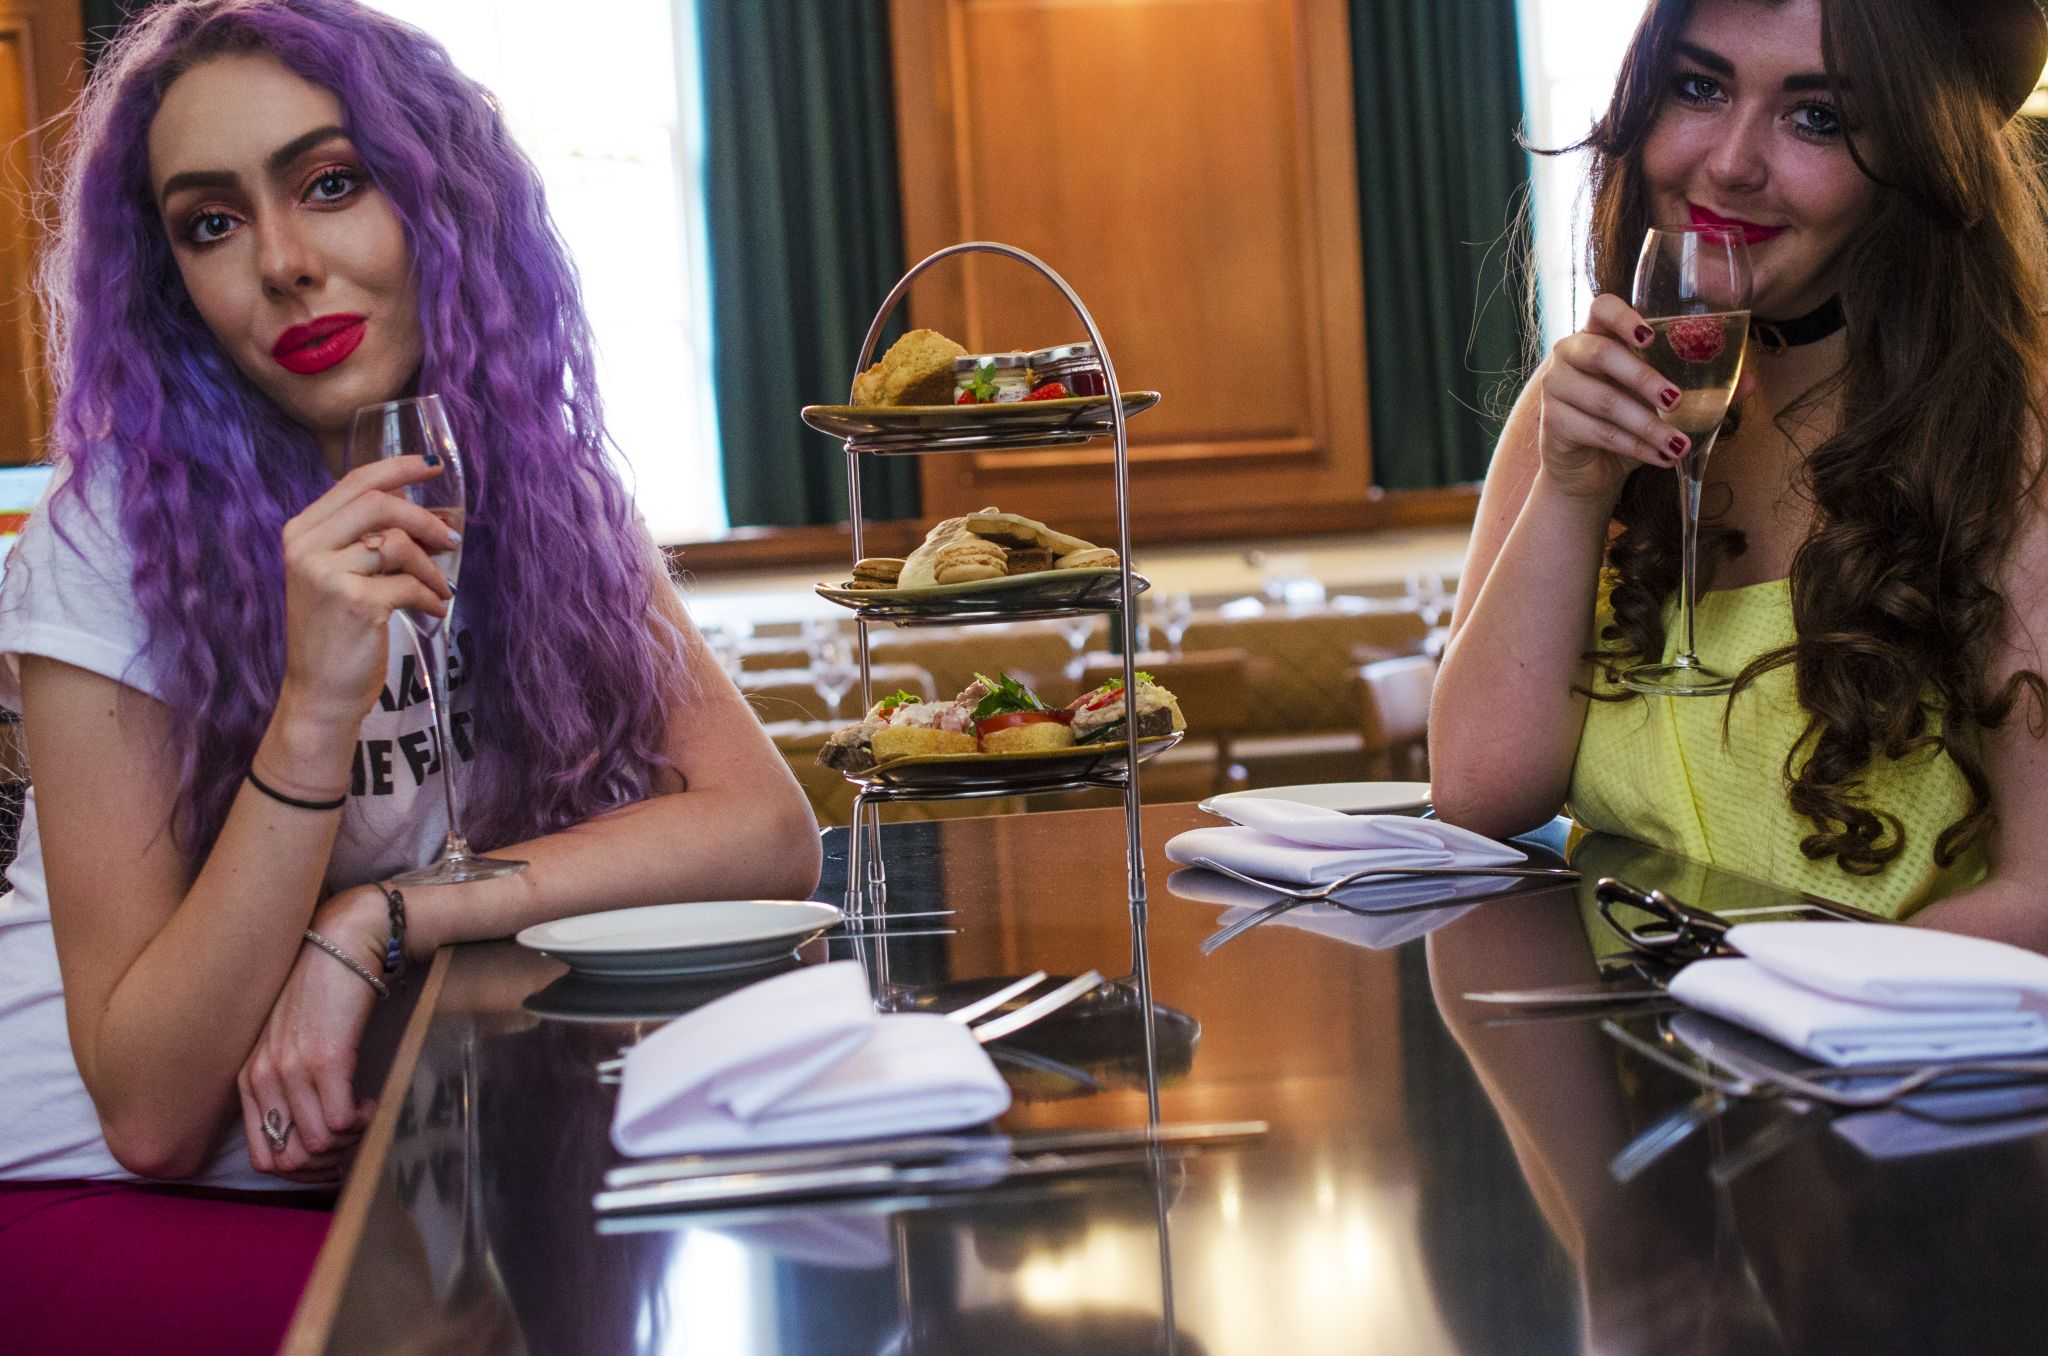 Stephi LaReine Dom Daly NYL Liverpool Fashion Afternoon Tea British Style Collective